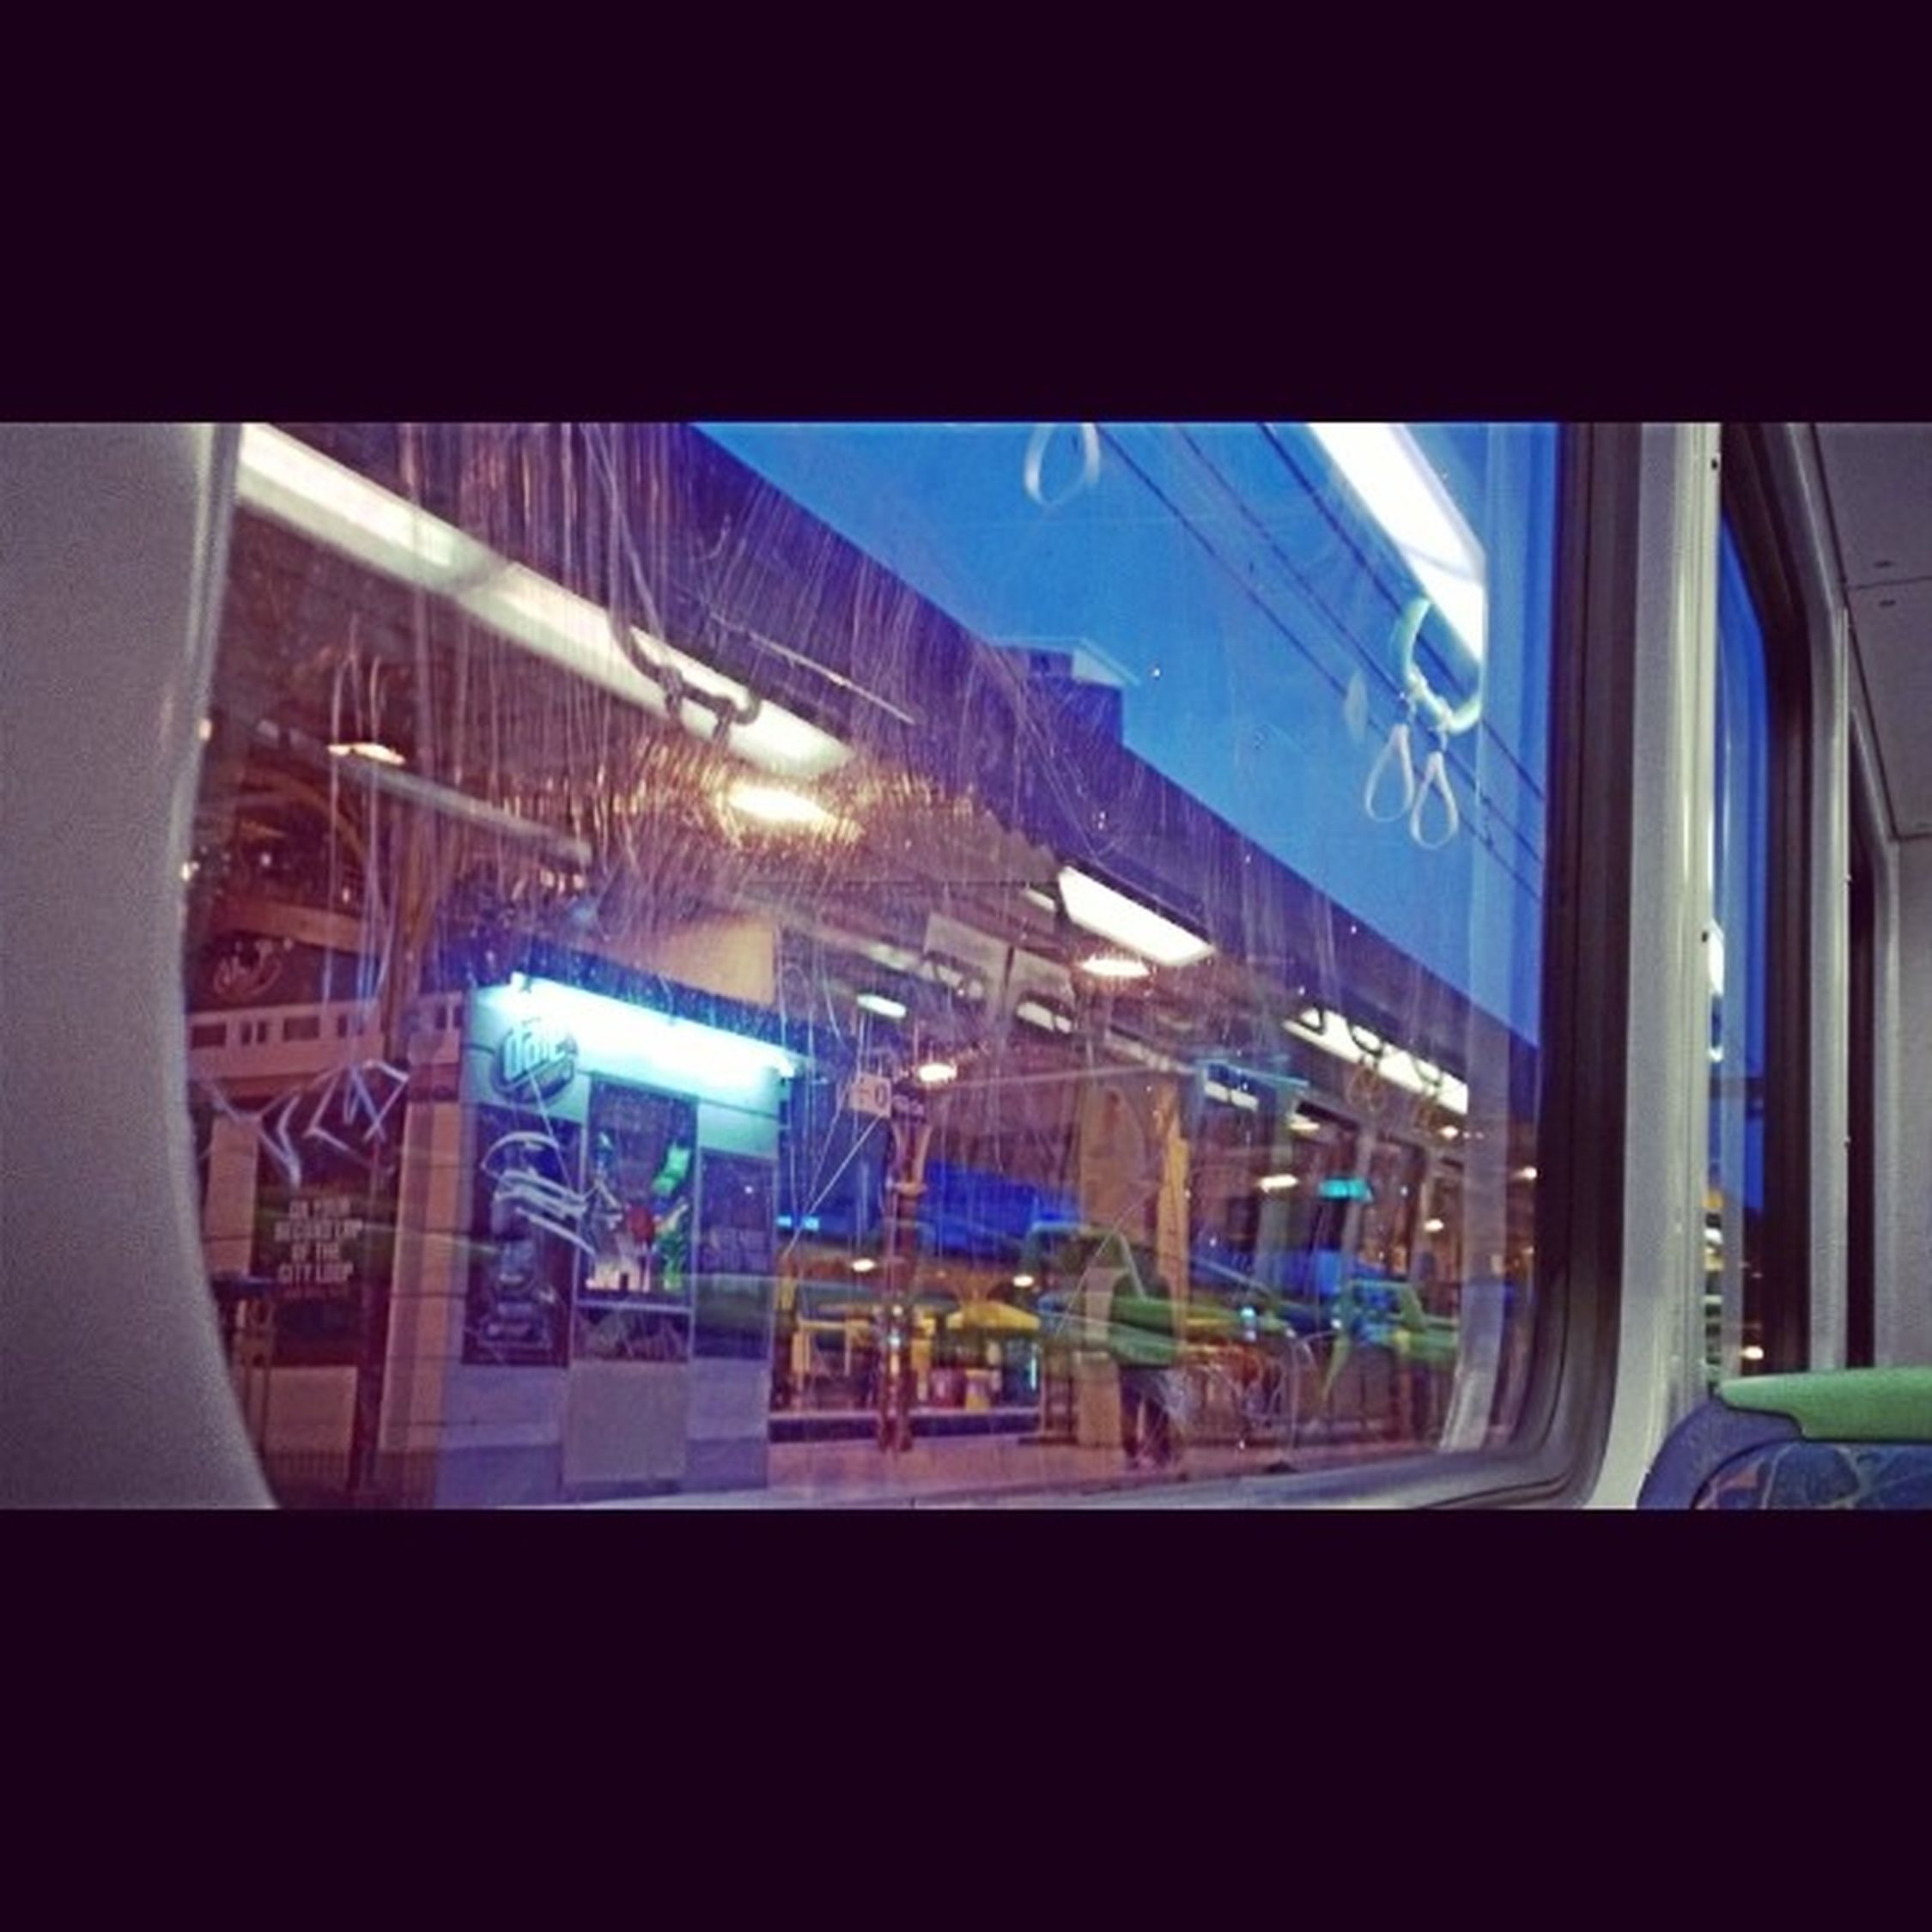 Shouldn't be allowed! Train ? Early DDDMelbourne Wpphoto winphan nokia lumia930